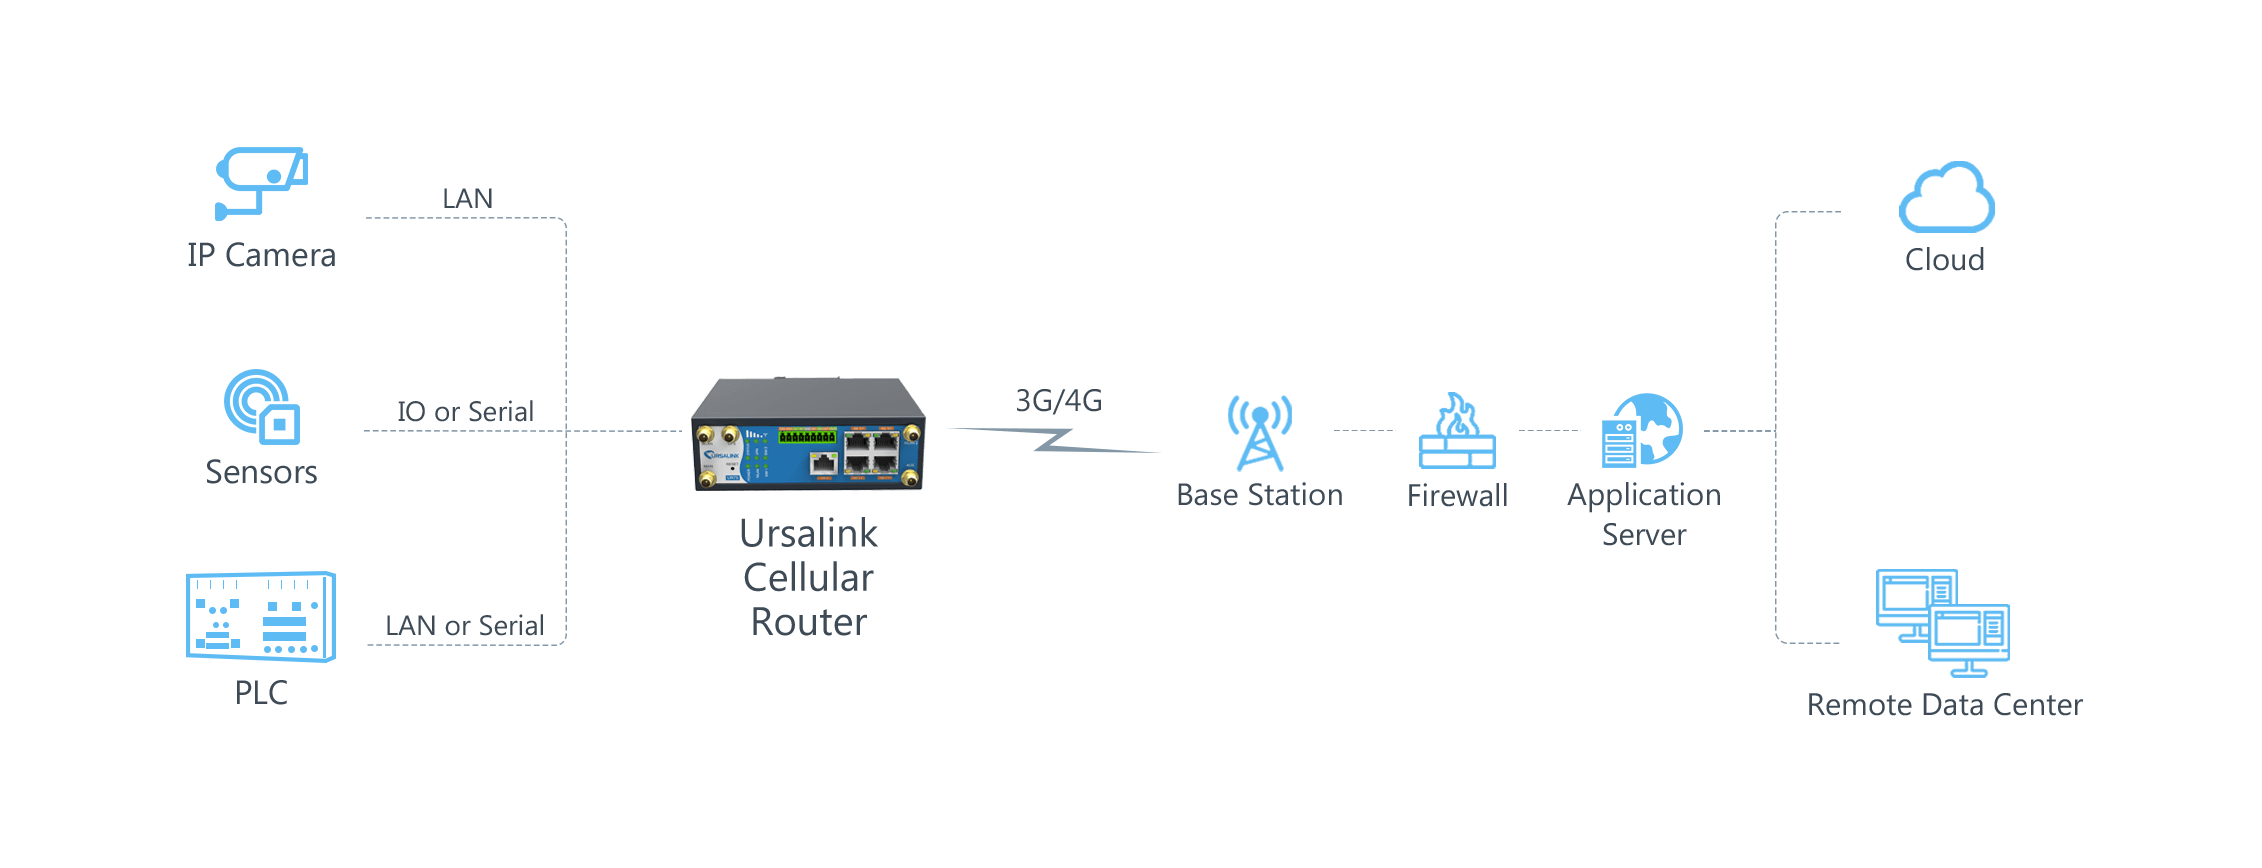 ursalink_smart_wastewater_management_topology